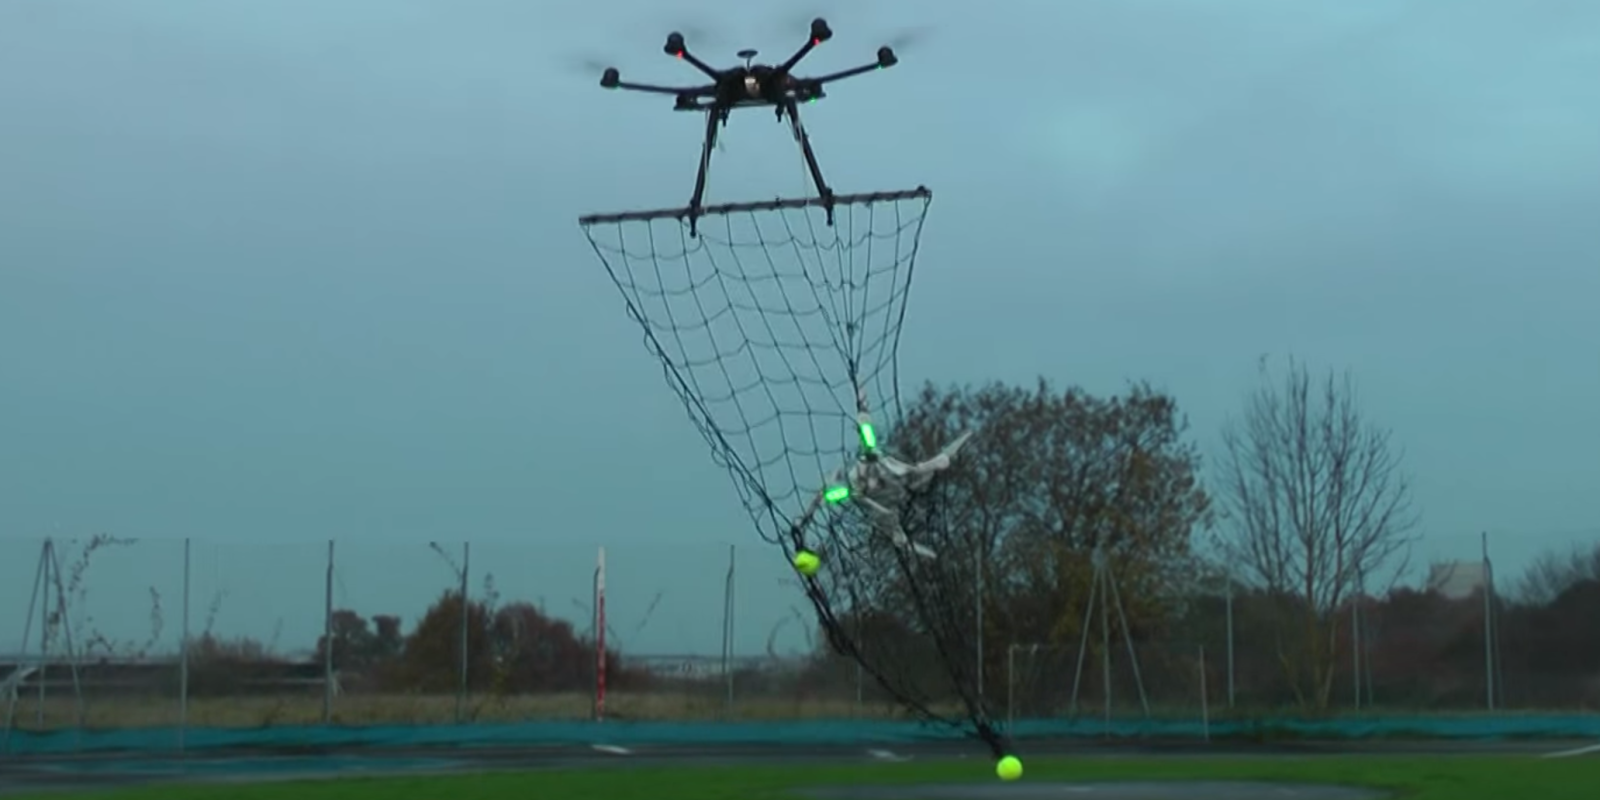 This Drone Interceptor Captures Your Pathetic Puny Drone